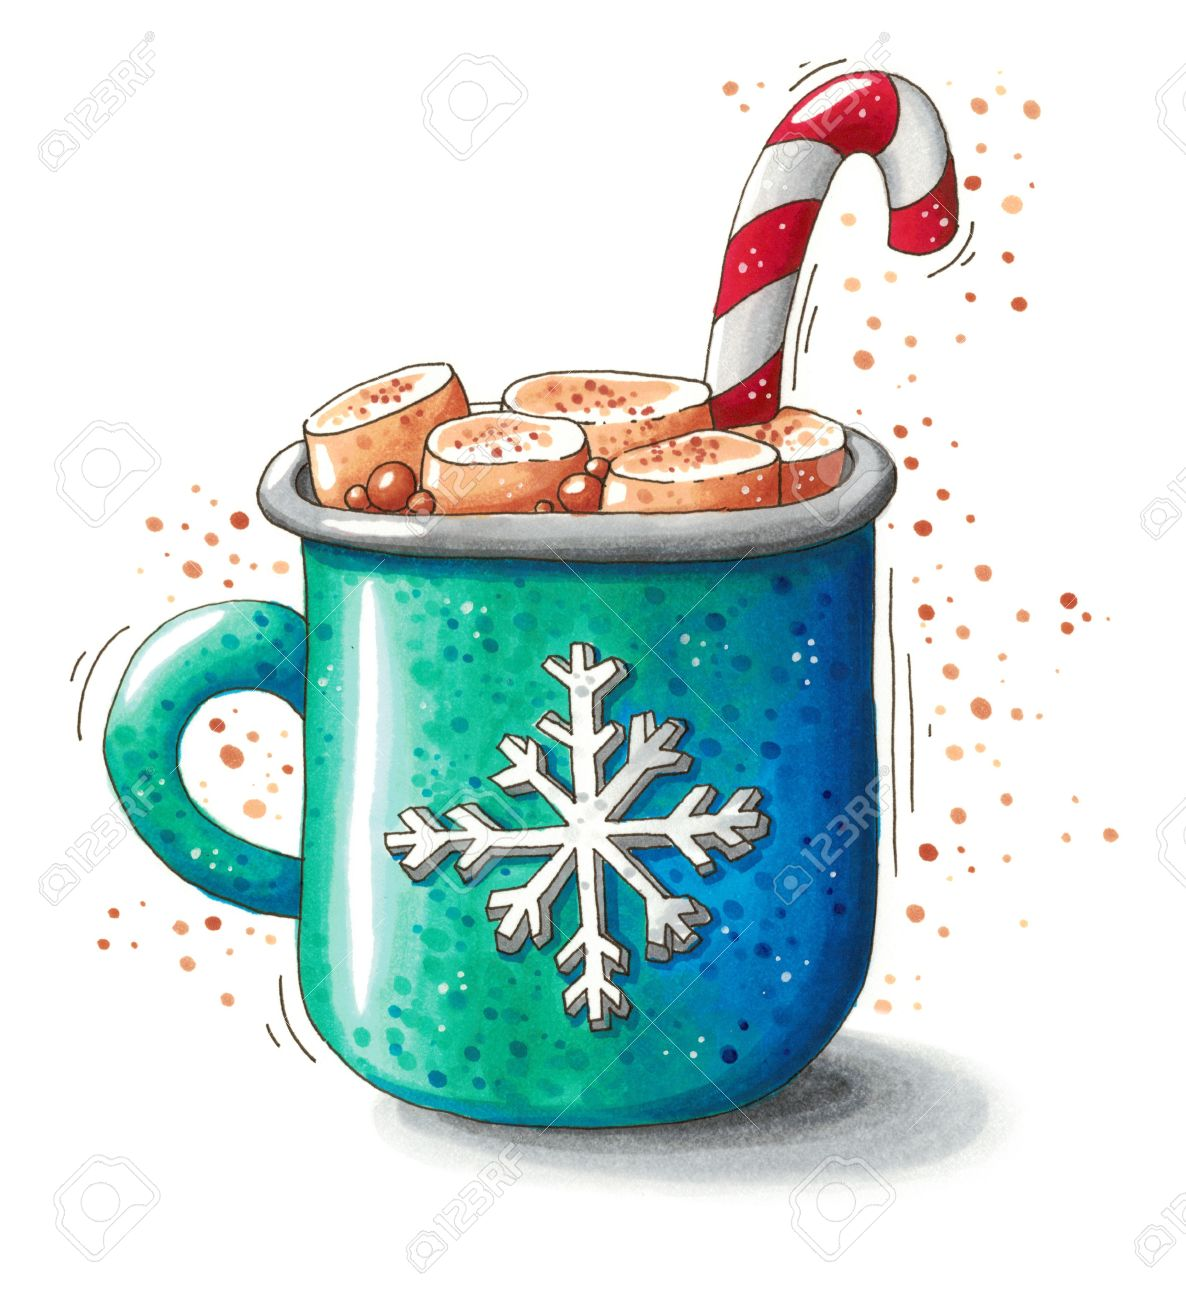 hot chocolate mug clipart. cute hand drawn christmas illustration of a mug with hot chocolate, melted marshmallows and chocolate clipart